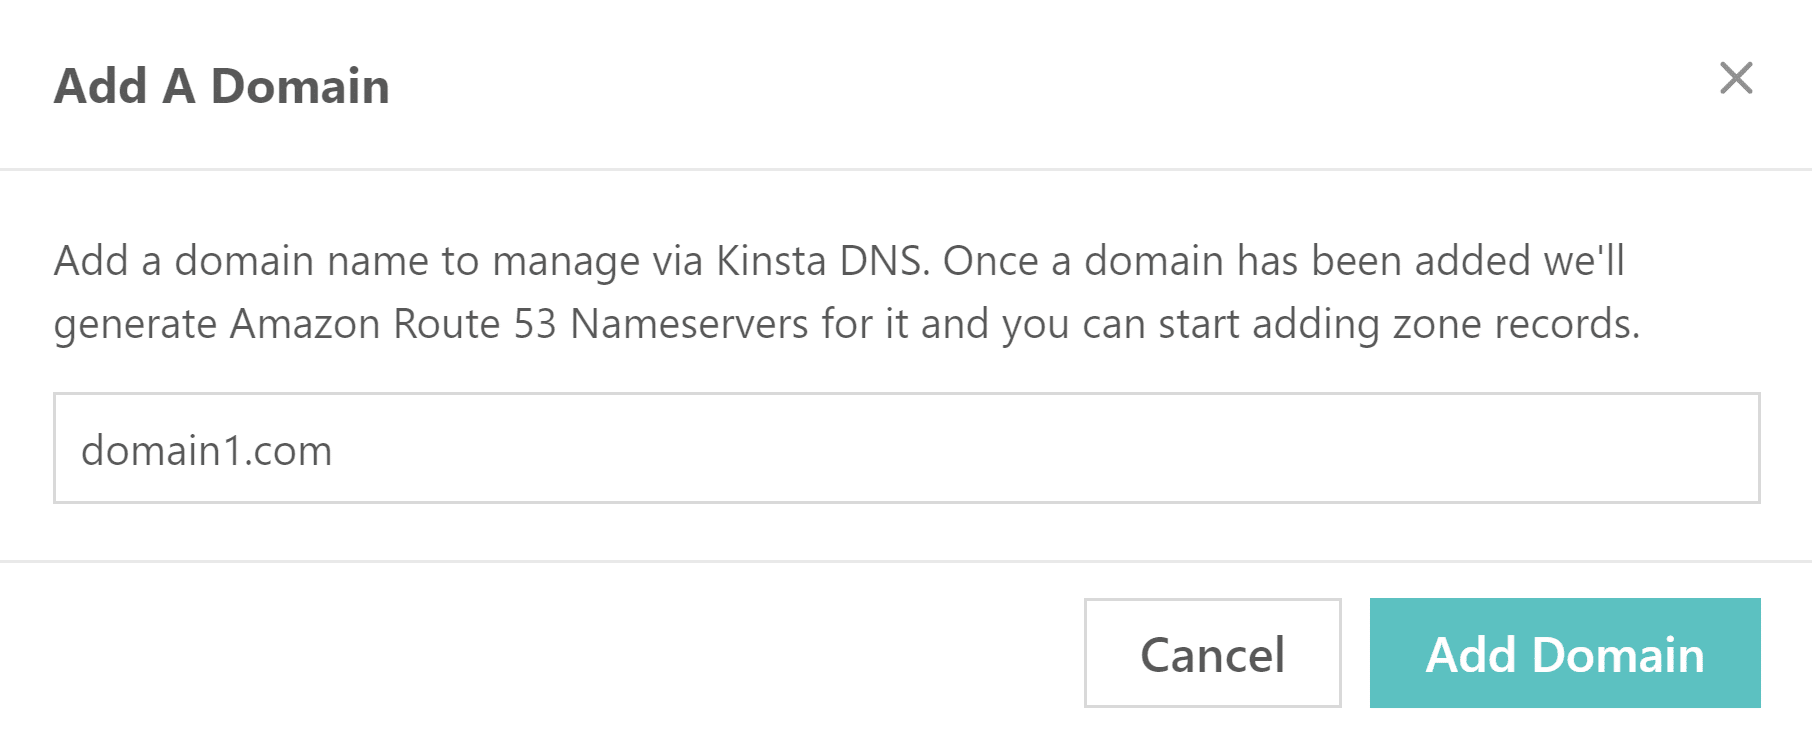 Add a domain to DNS